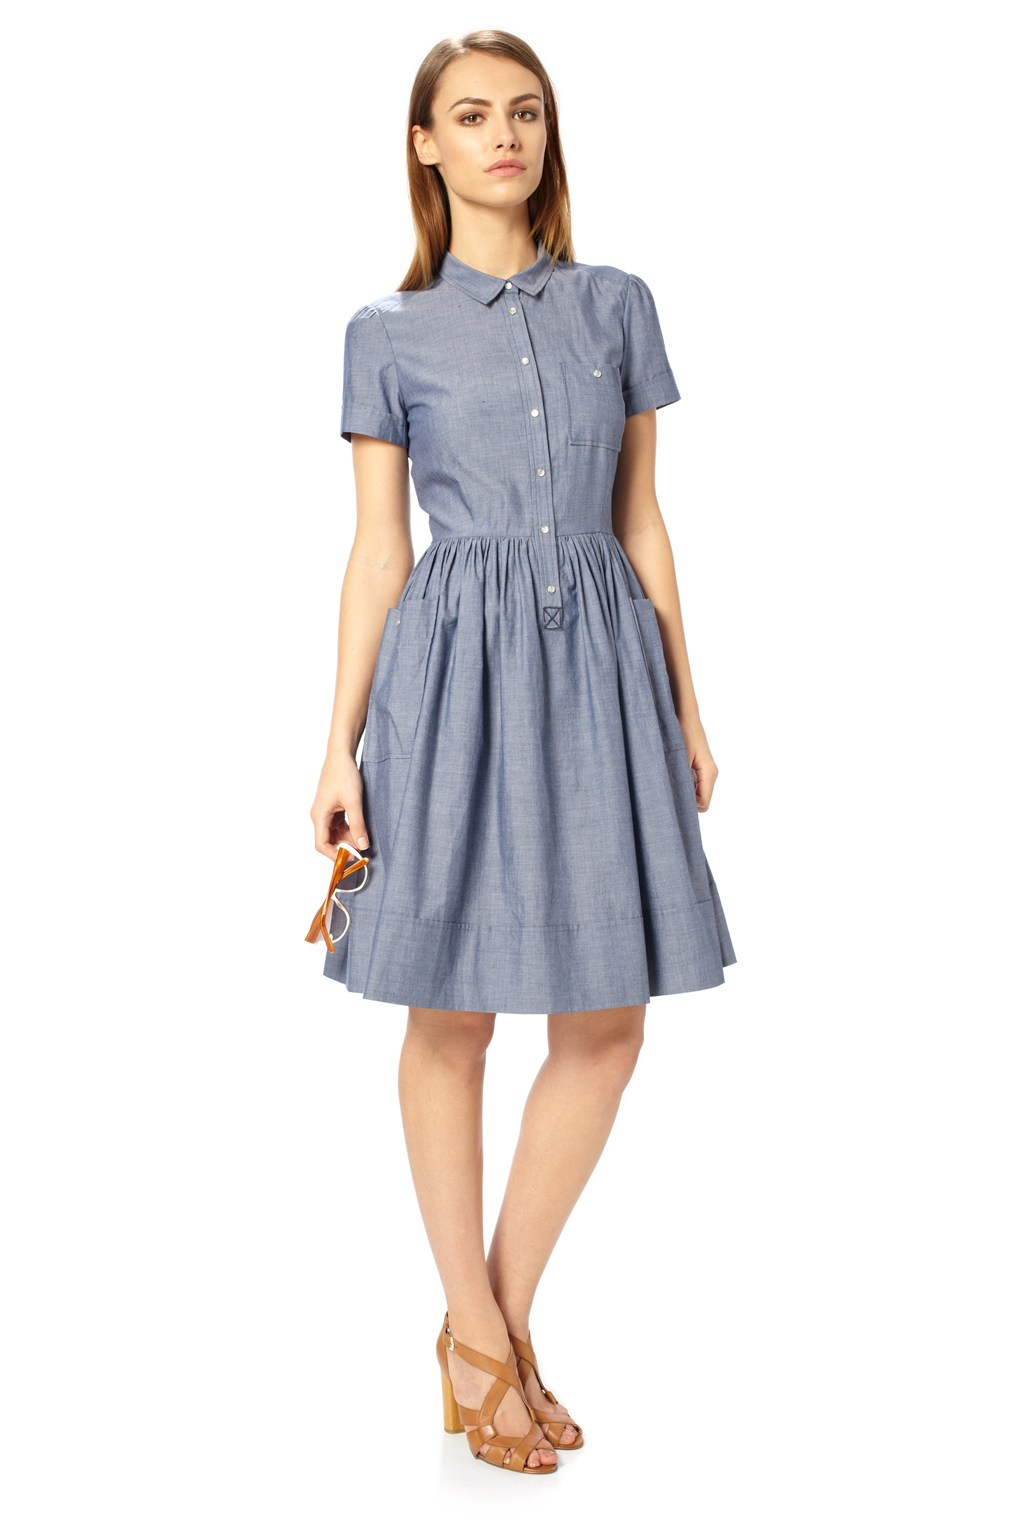 chambray dress dressed up girl